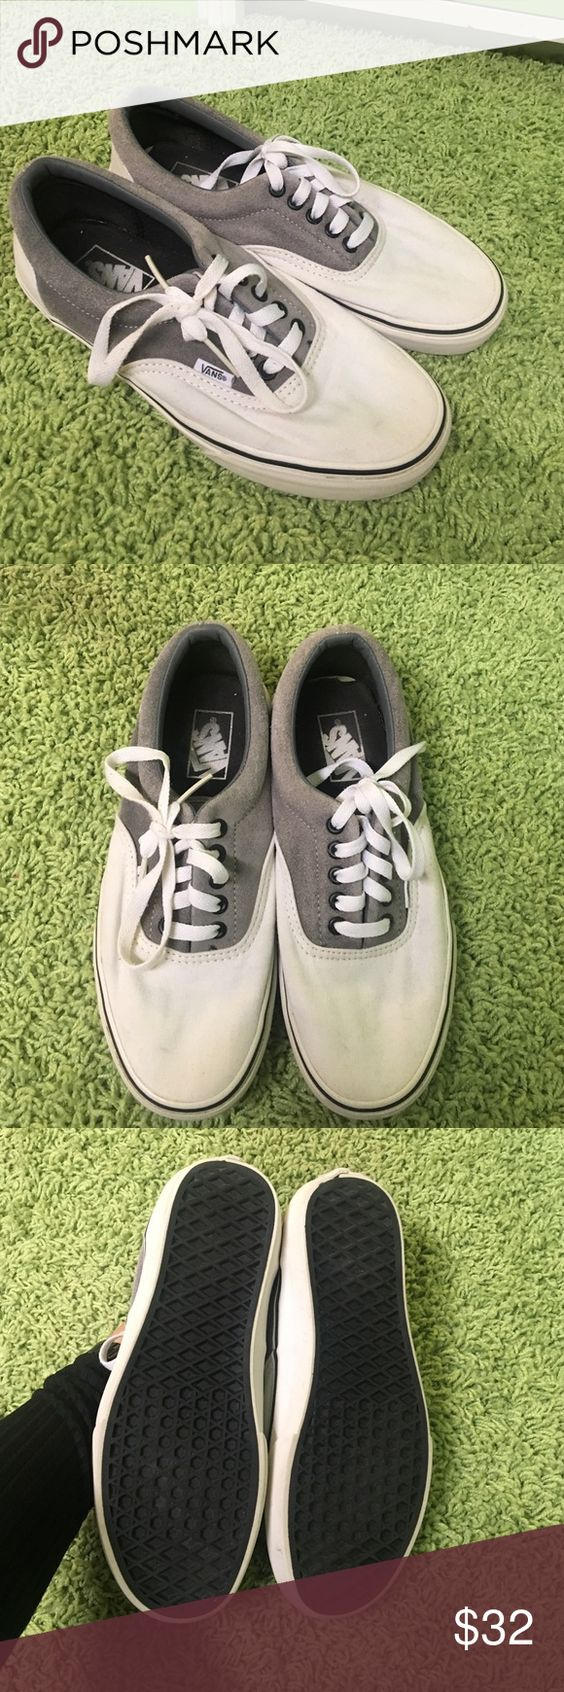 Vans These are in pretty much perfect condition. The gray part is a suede material. Women's size 8. Men's 6.5. Vans Shoes Sneakers